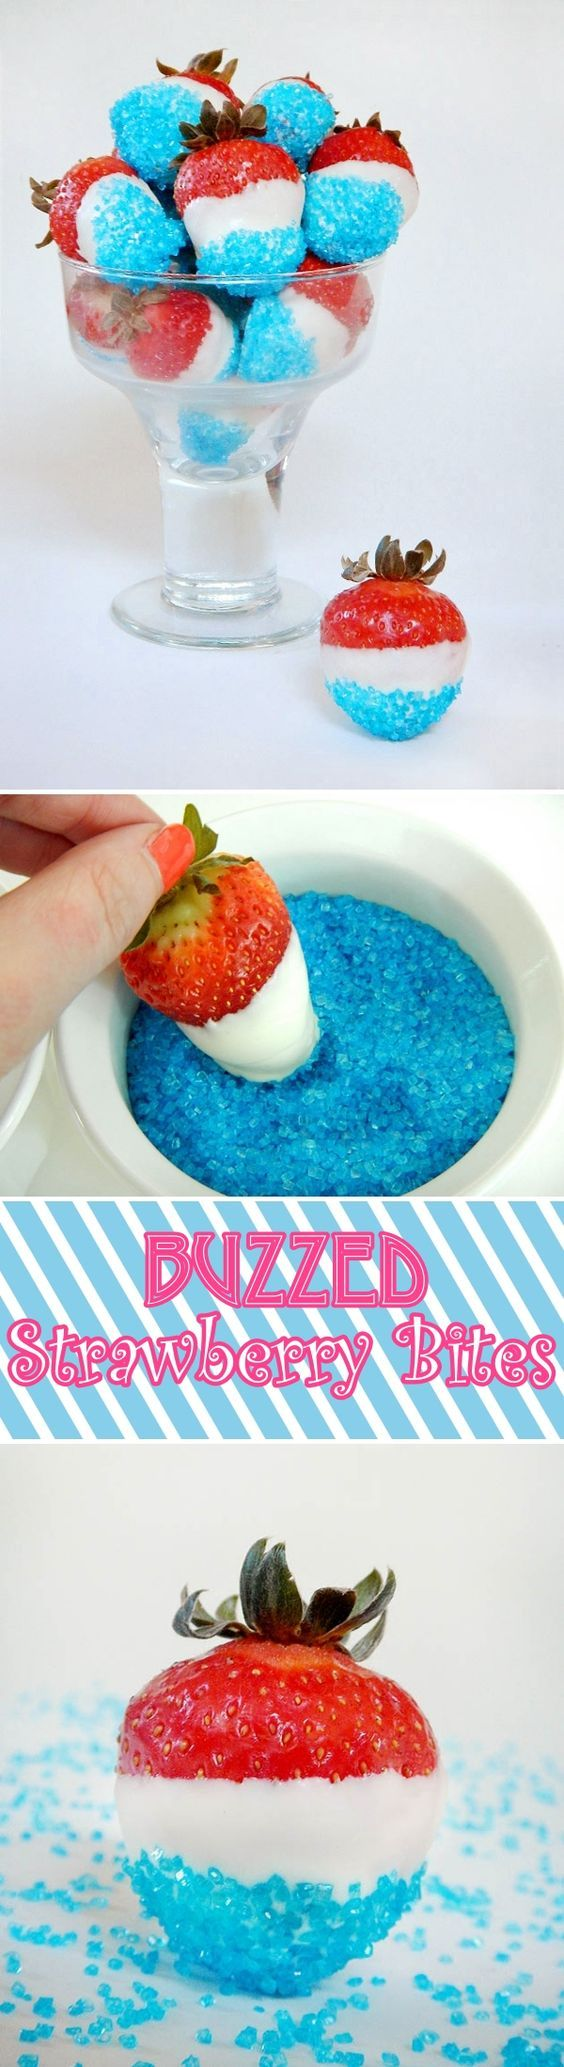 BUZZED STRAWBERRY BITES | Fourth of July Desserts | Fourth of July Recipes | 12+ Finger-Licking 4th of July Food and Desserts Recipes | Fenzyme.com